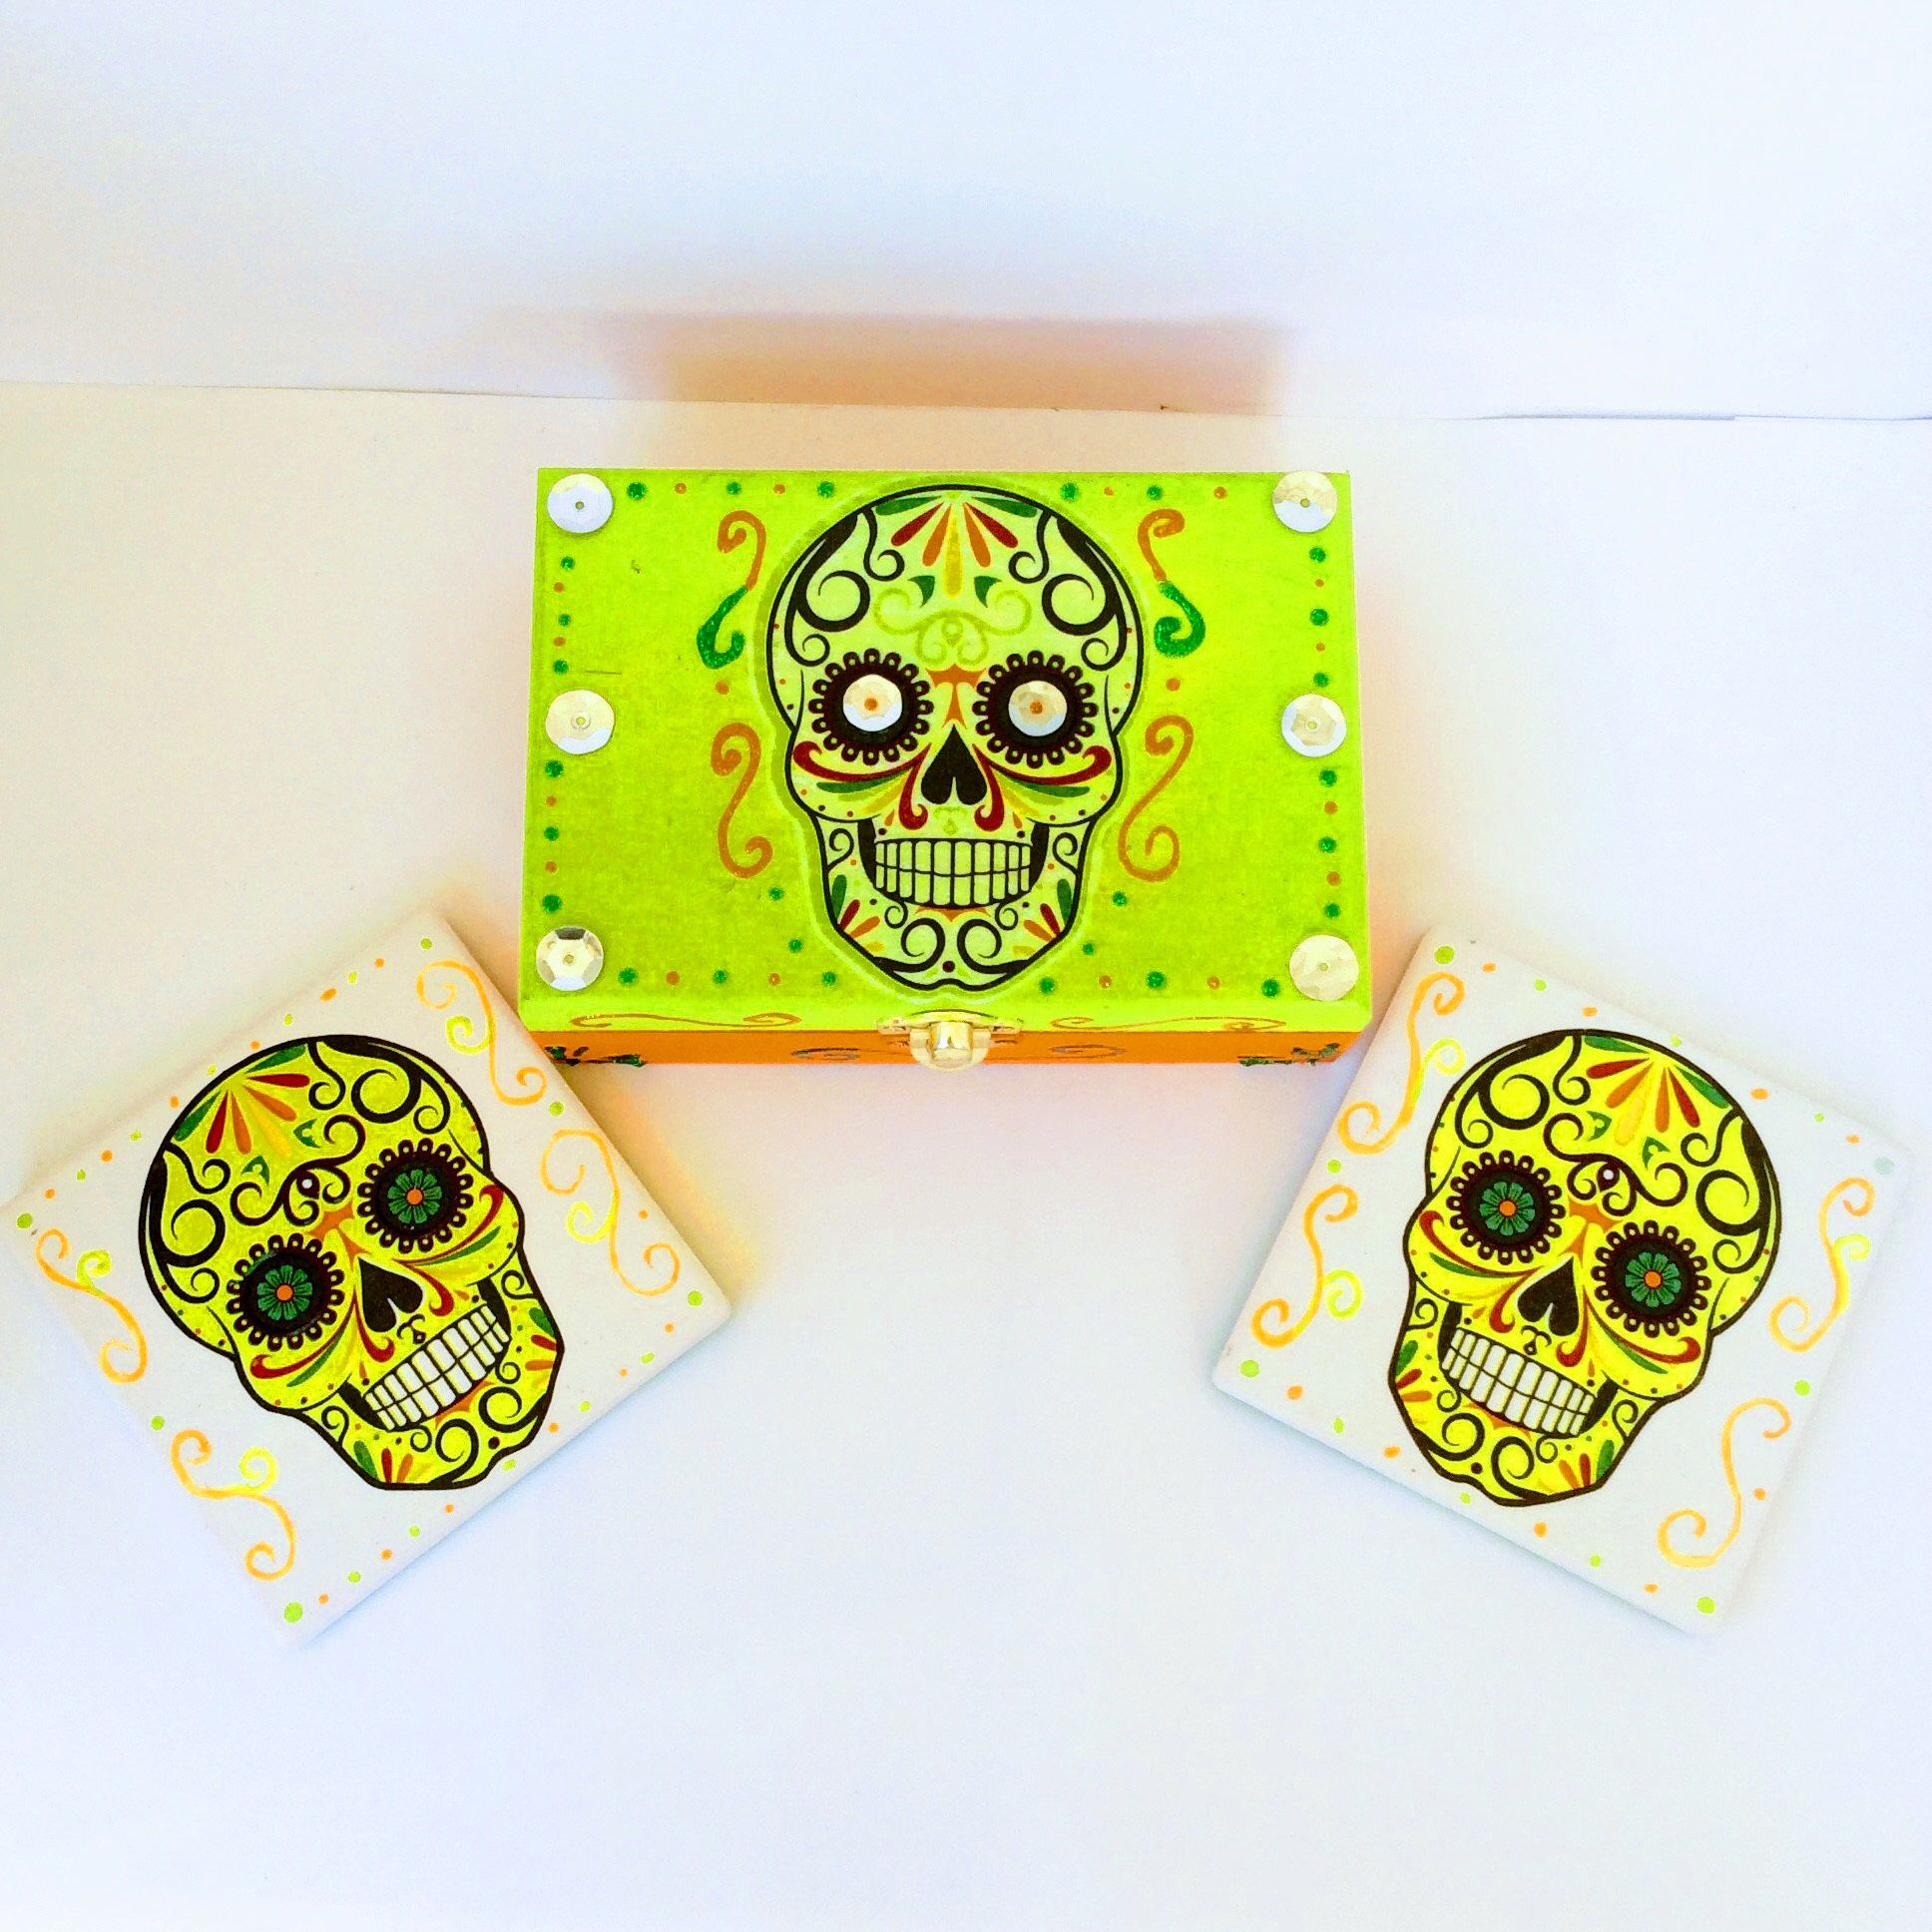 Day of the dead da de los muertos jewelry box sugar skull day of the dead da de los muertos jewelry box sugar skull ceramic tiles dailygadgetfo Choice Image